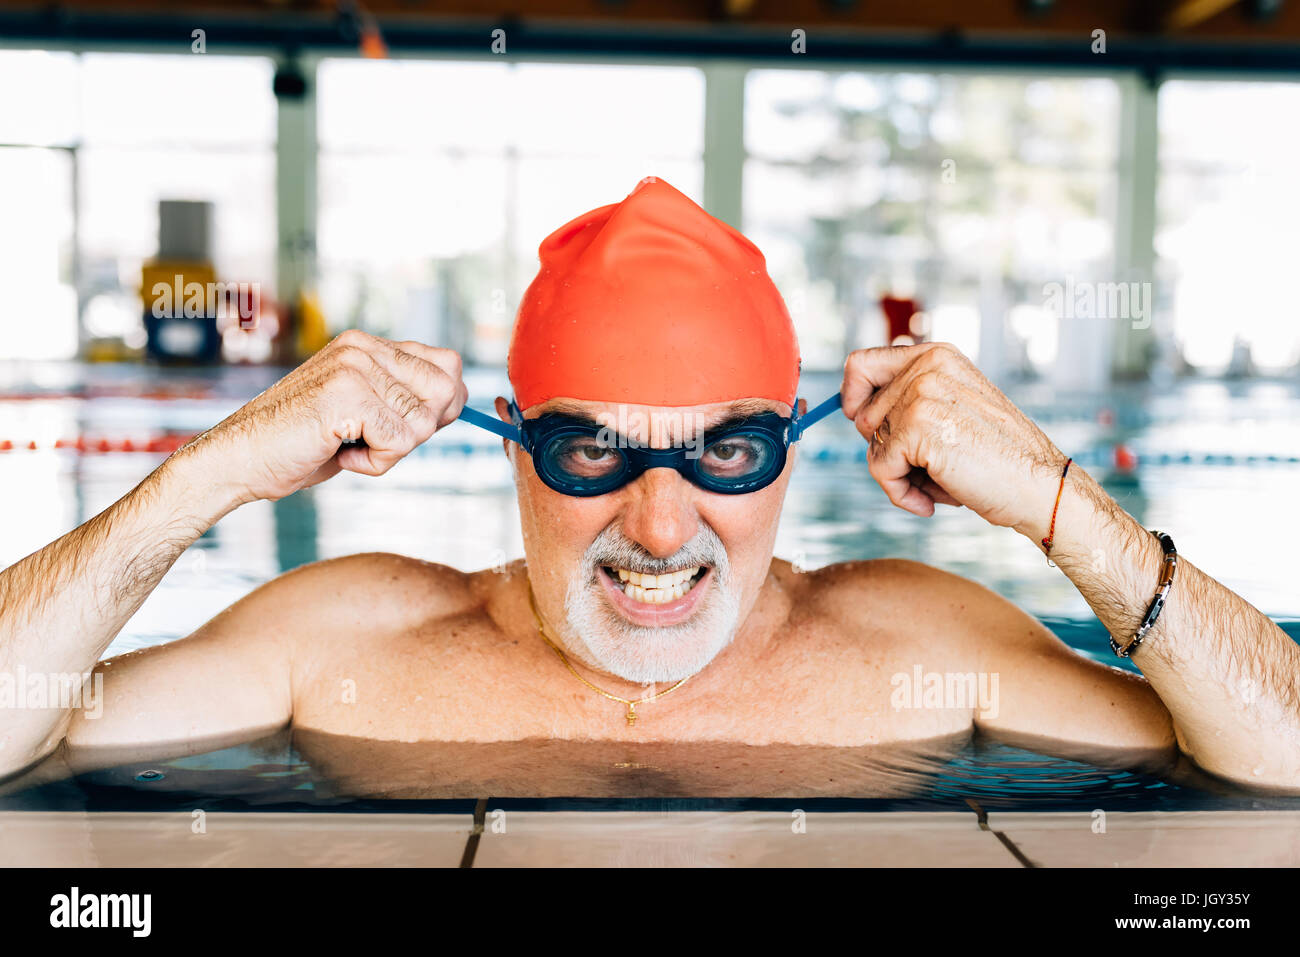 Senior man pulling mean face wearing goggles in swimming pool - Stock Image